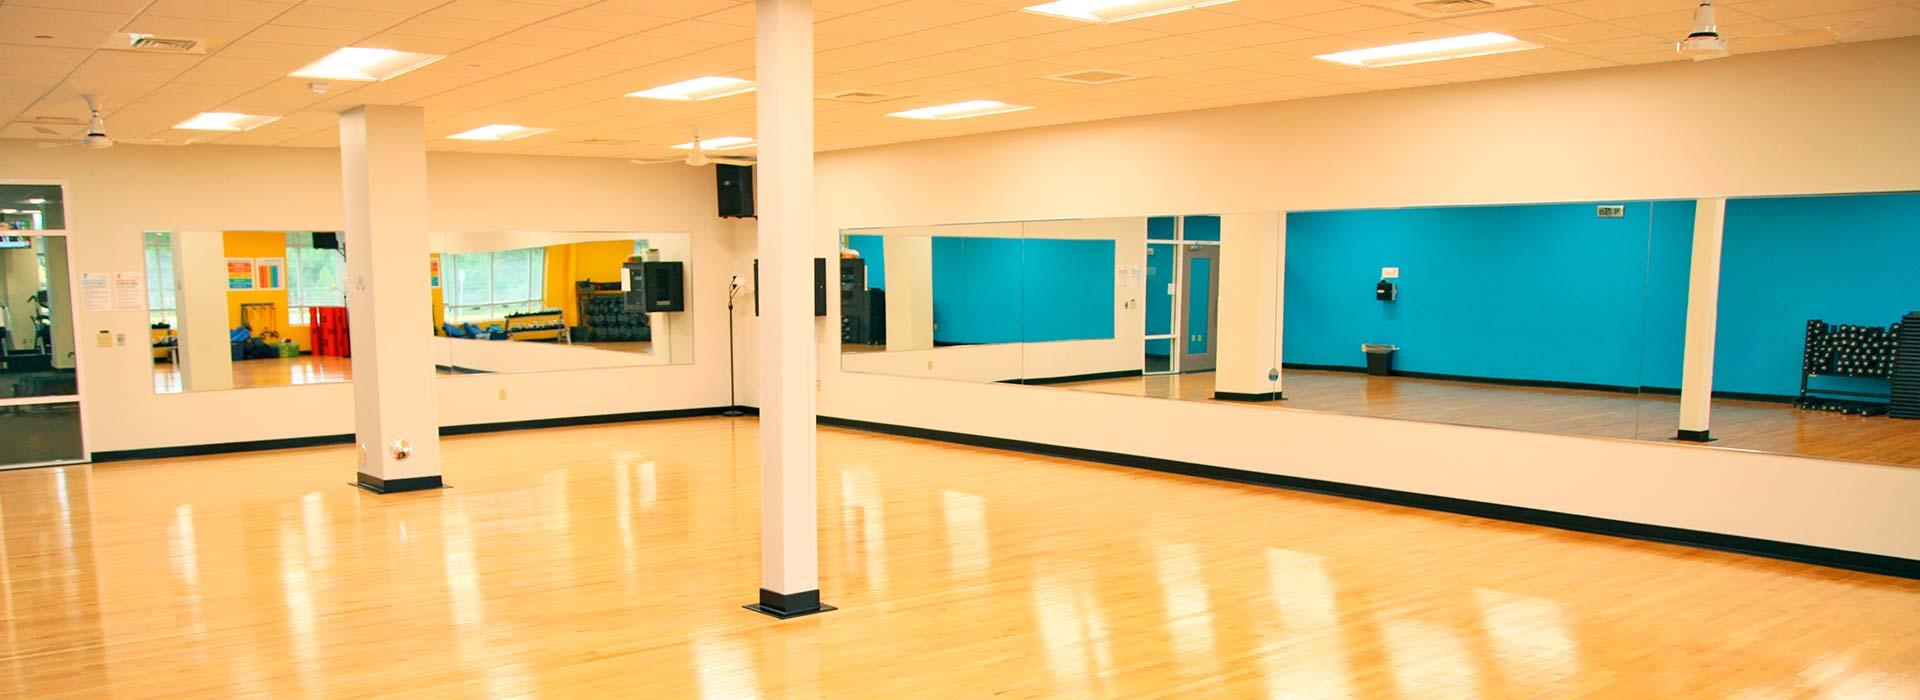 Group fitness room for fitness classes at the YMCA at Edinburgh